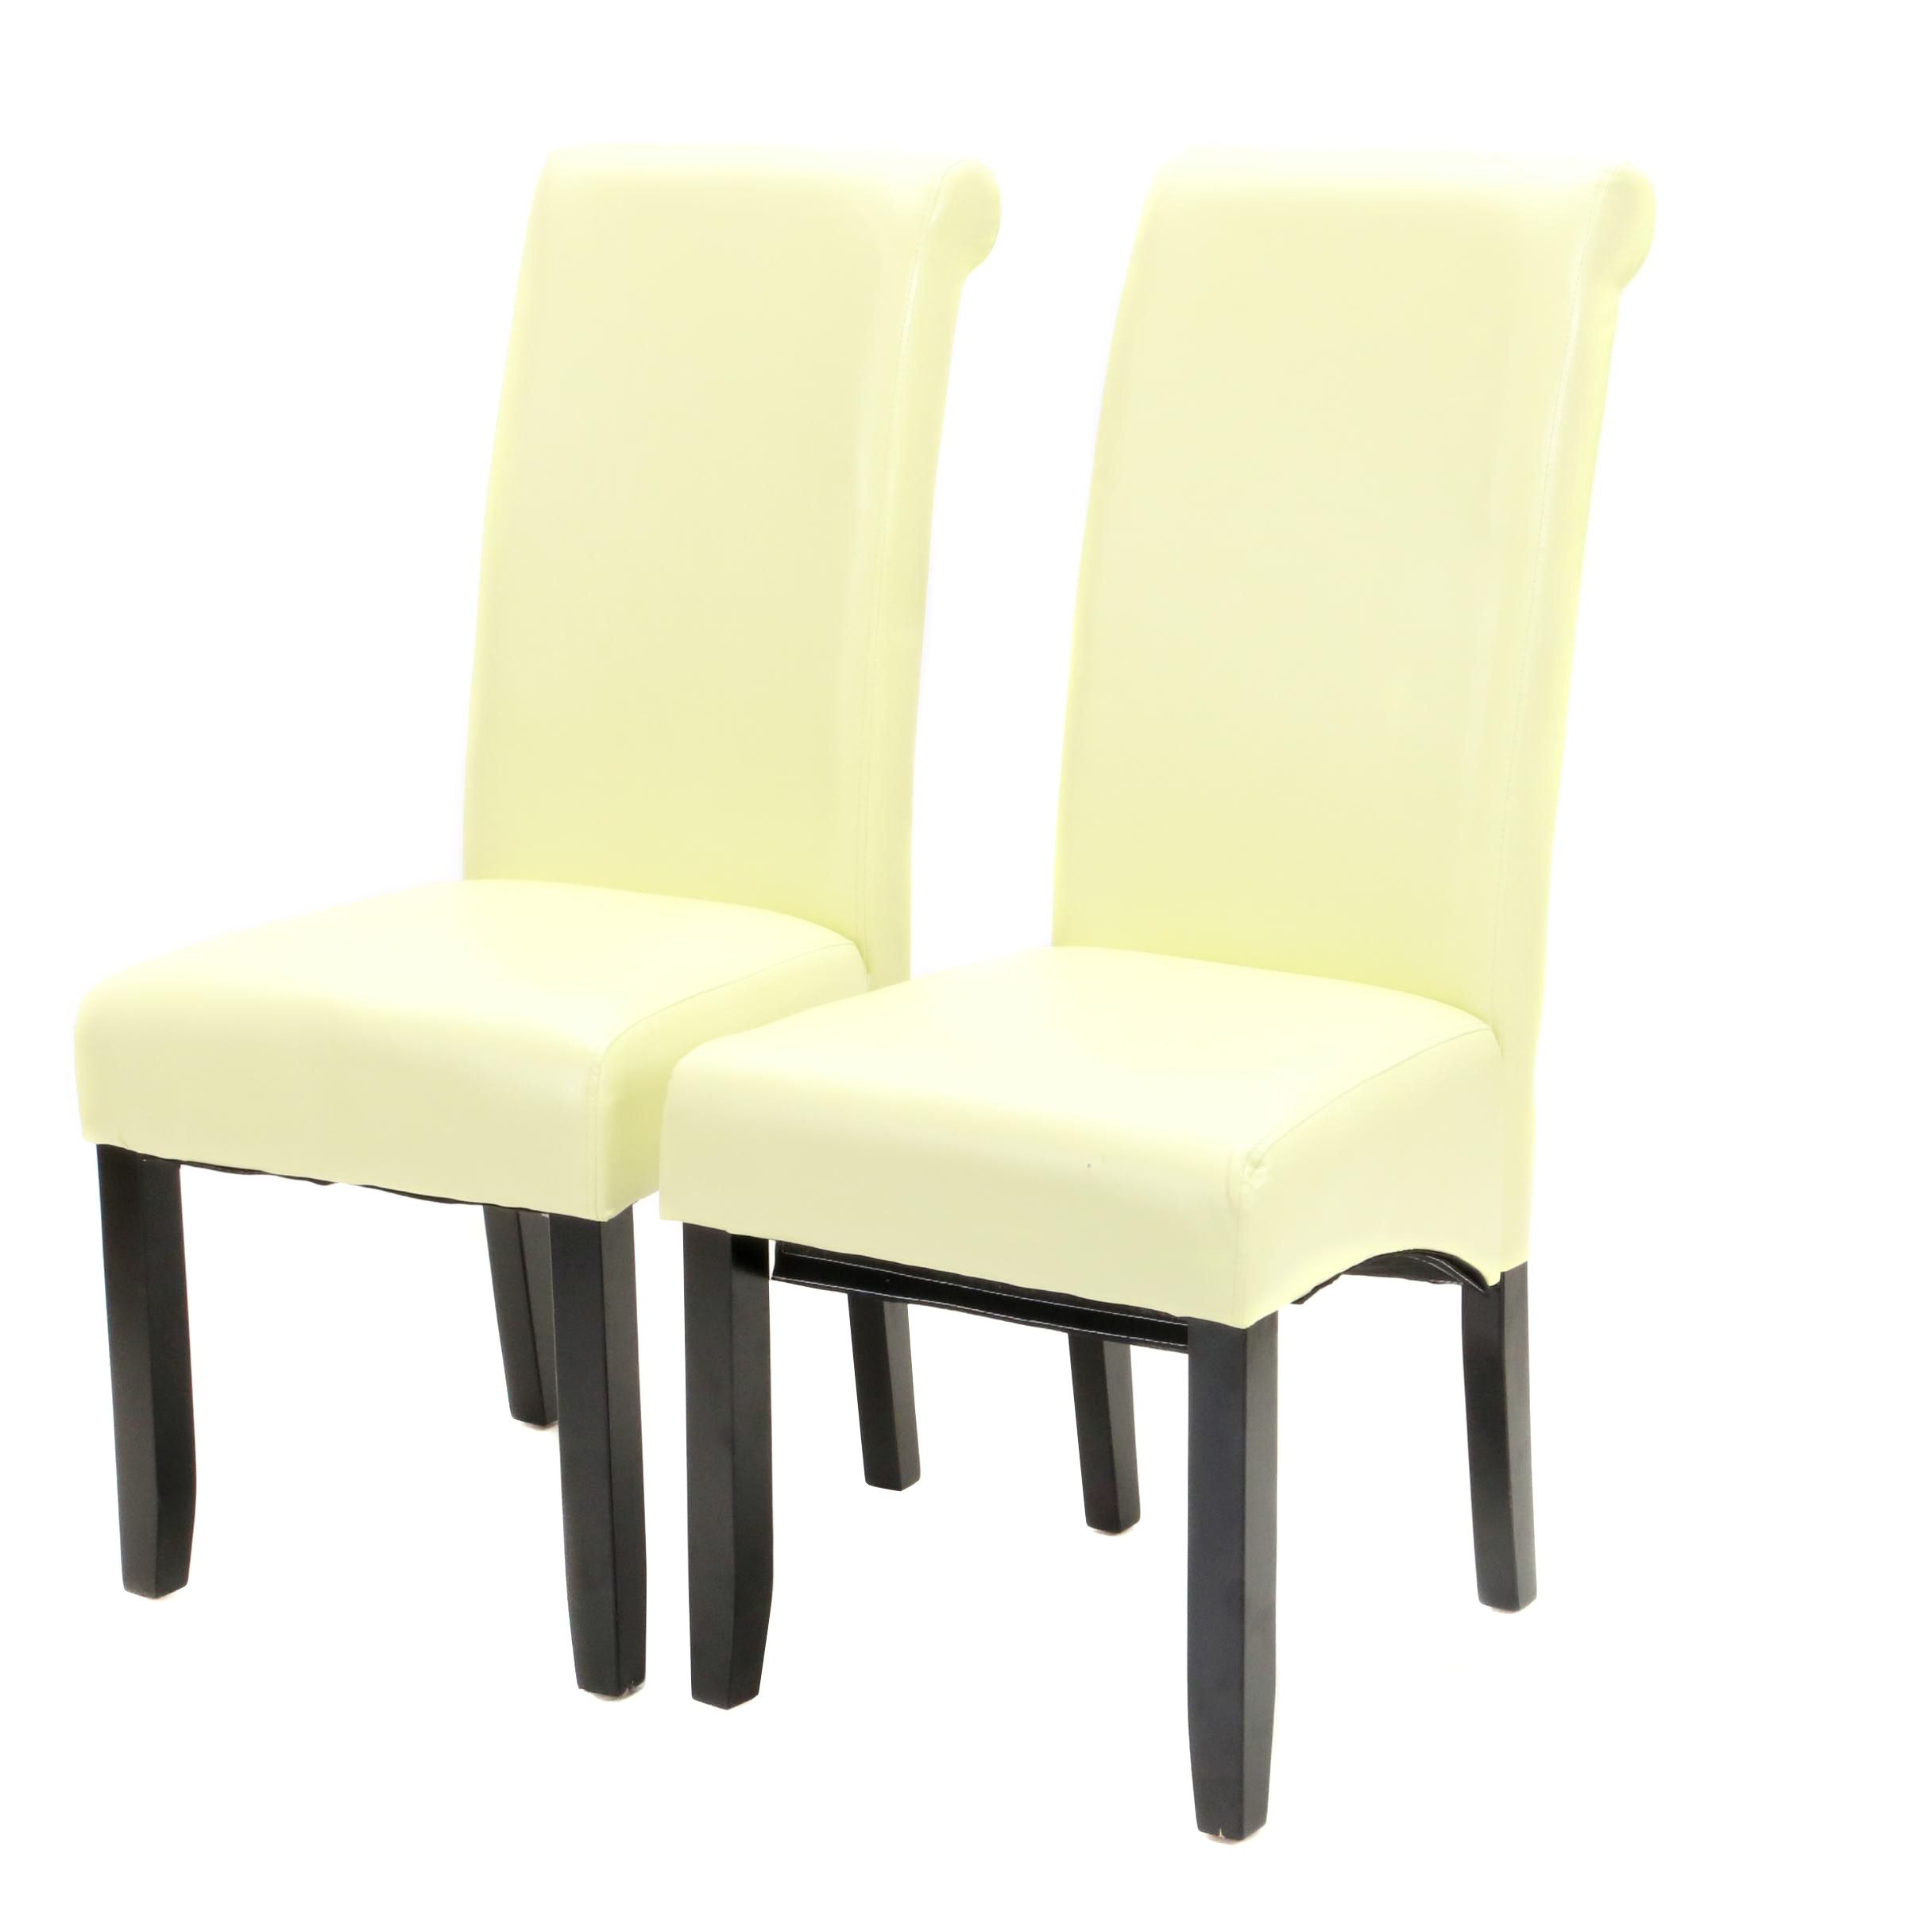 Modernist Side Chairs